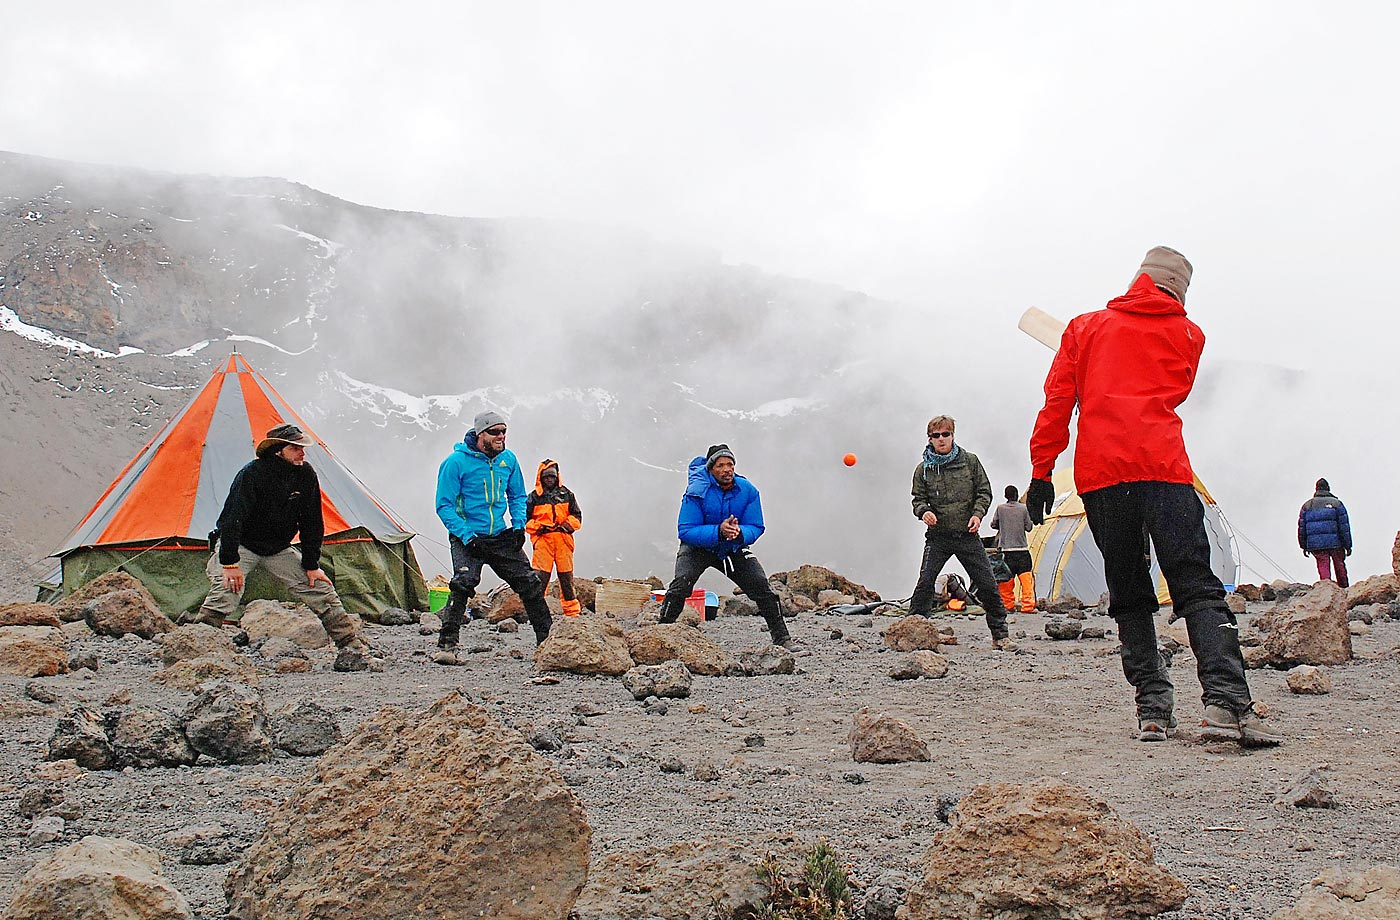 Cricketers practice on the ice-covered crater of the Kilimanjaro mountain, Tanzania. The game was an attempt to play the world's highest game of cricket, breaking the previous record set in 2009 on Mount Everest.